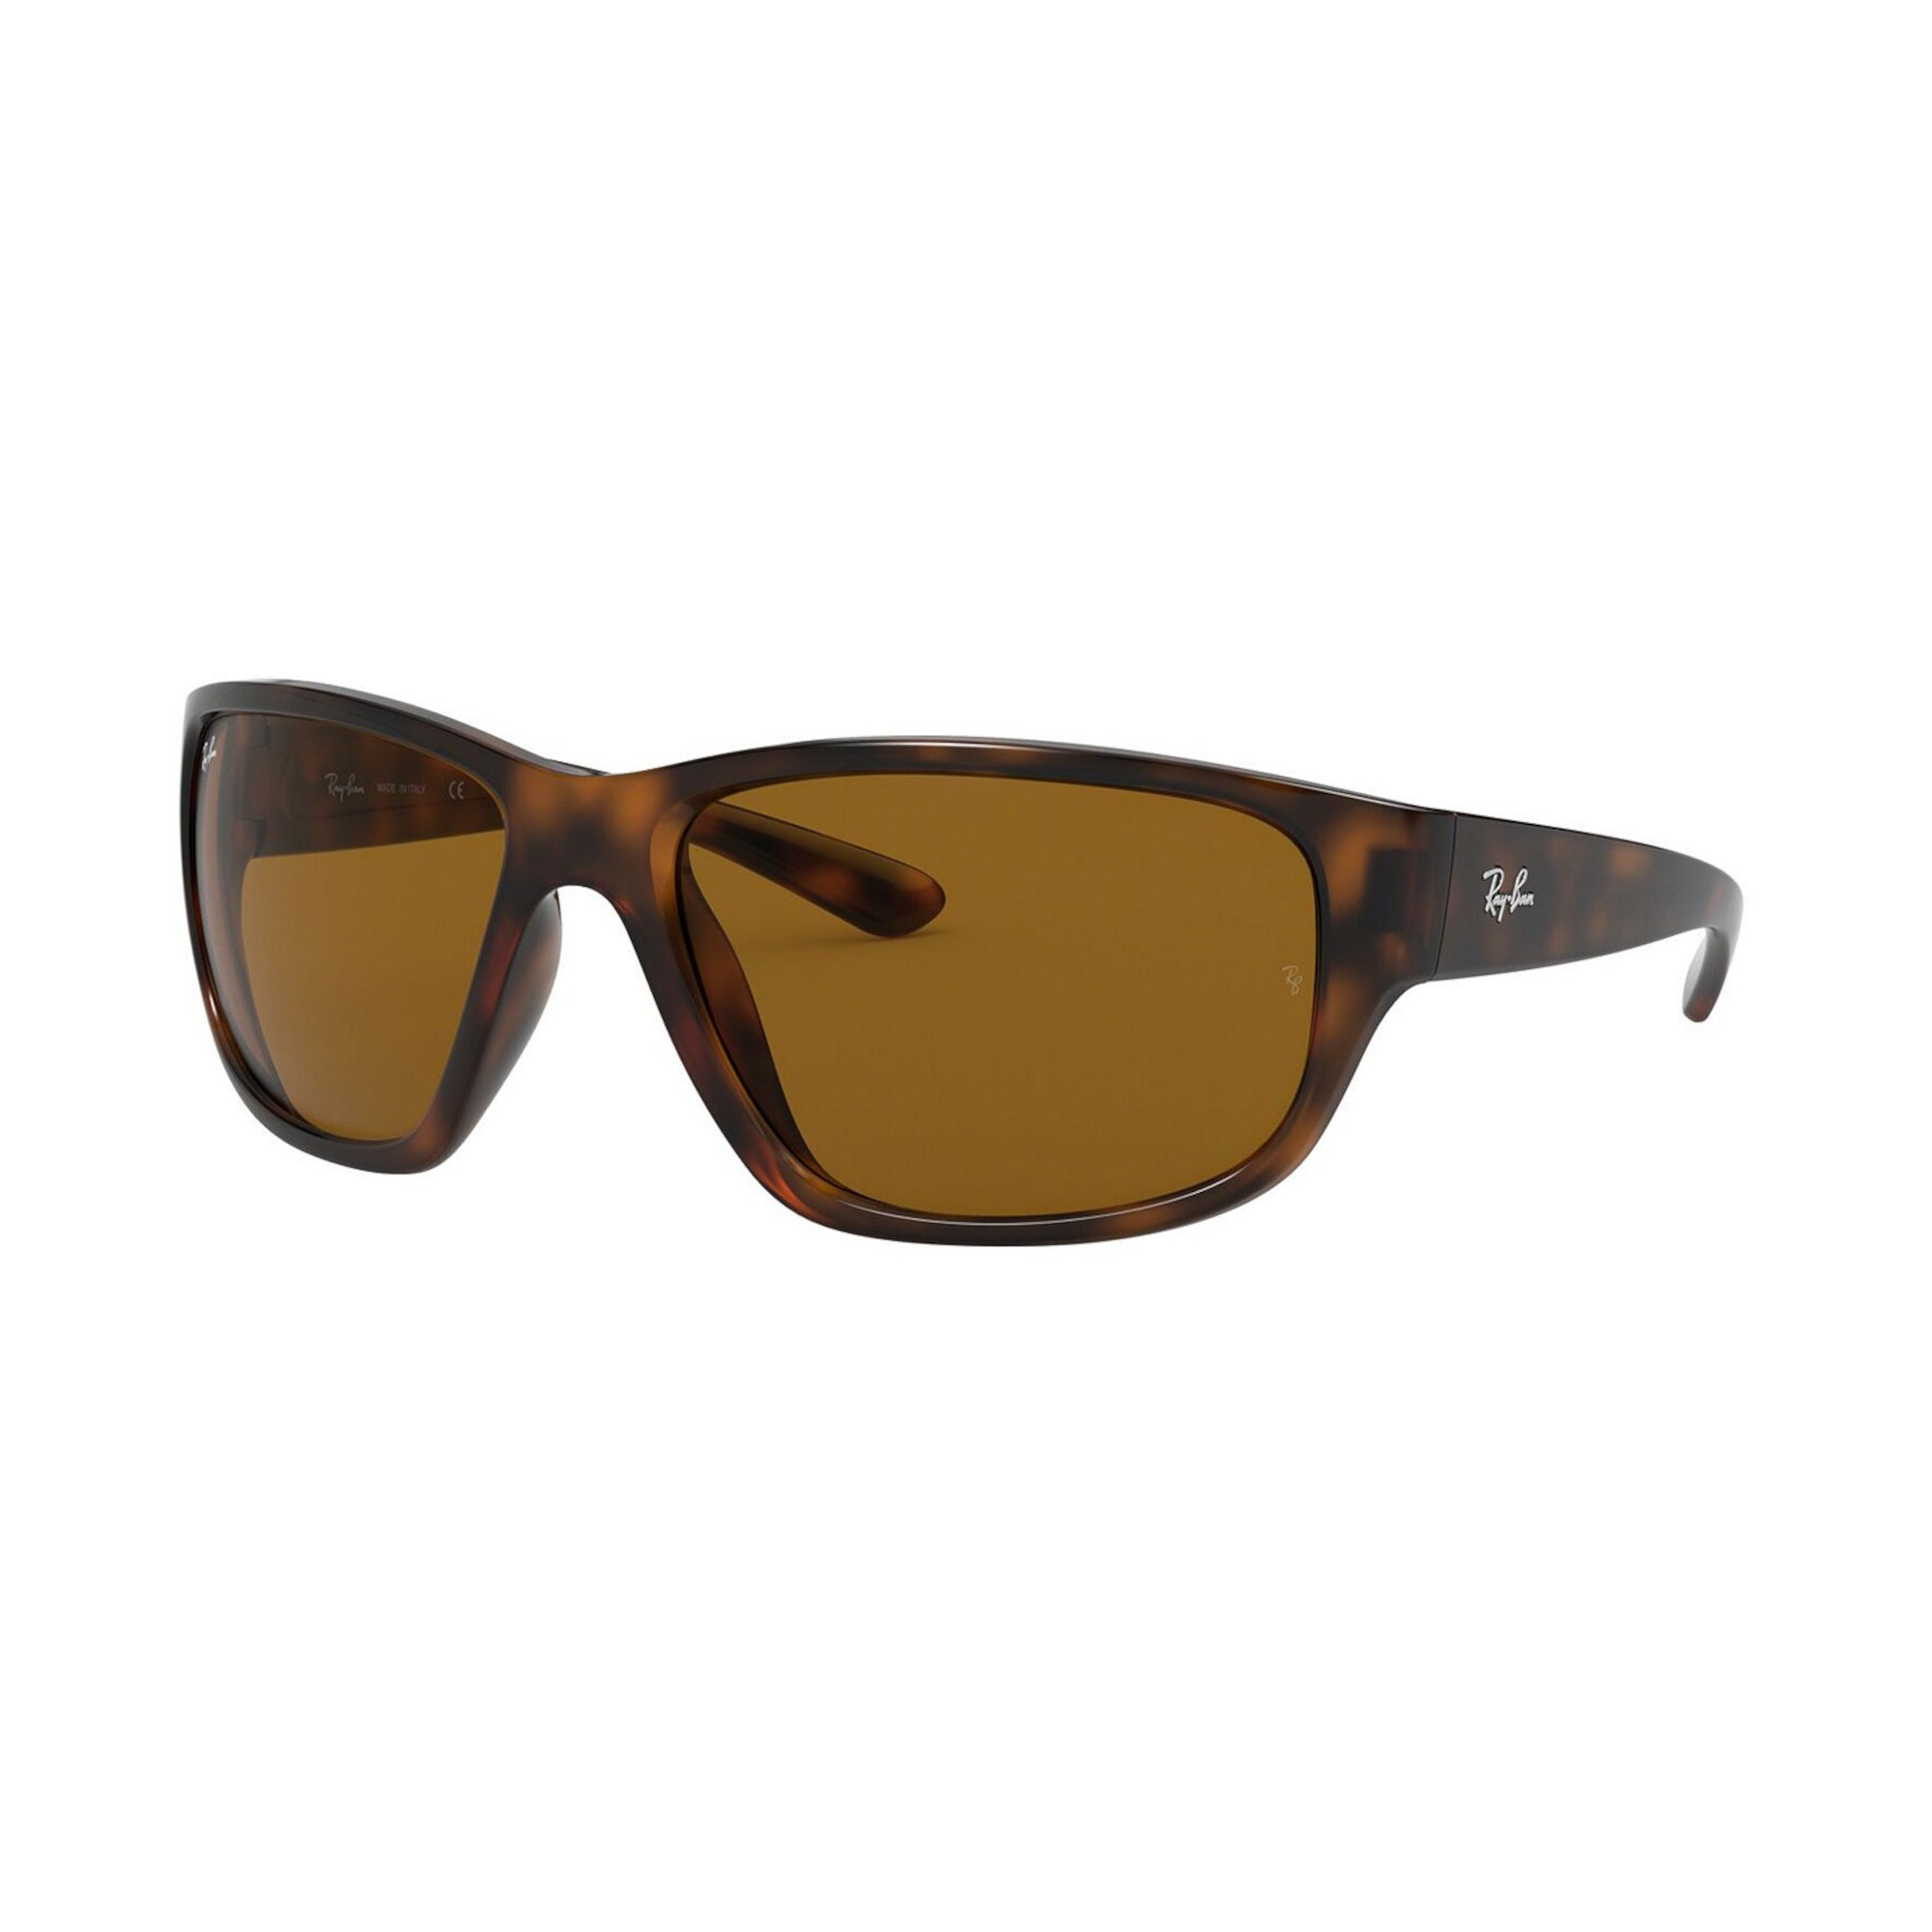 Ray-Ban 4300 Men's Sunglasses - Havana Brown/Brown